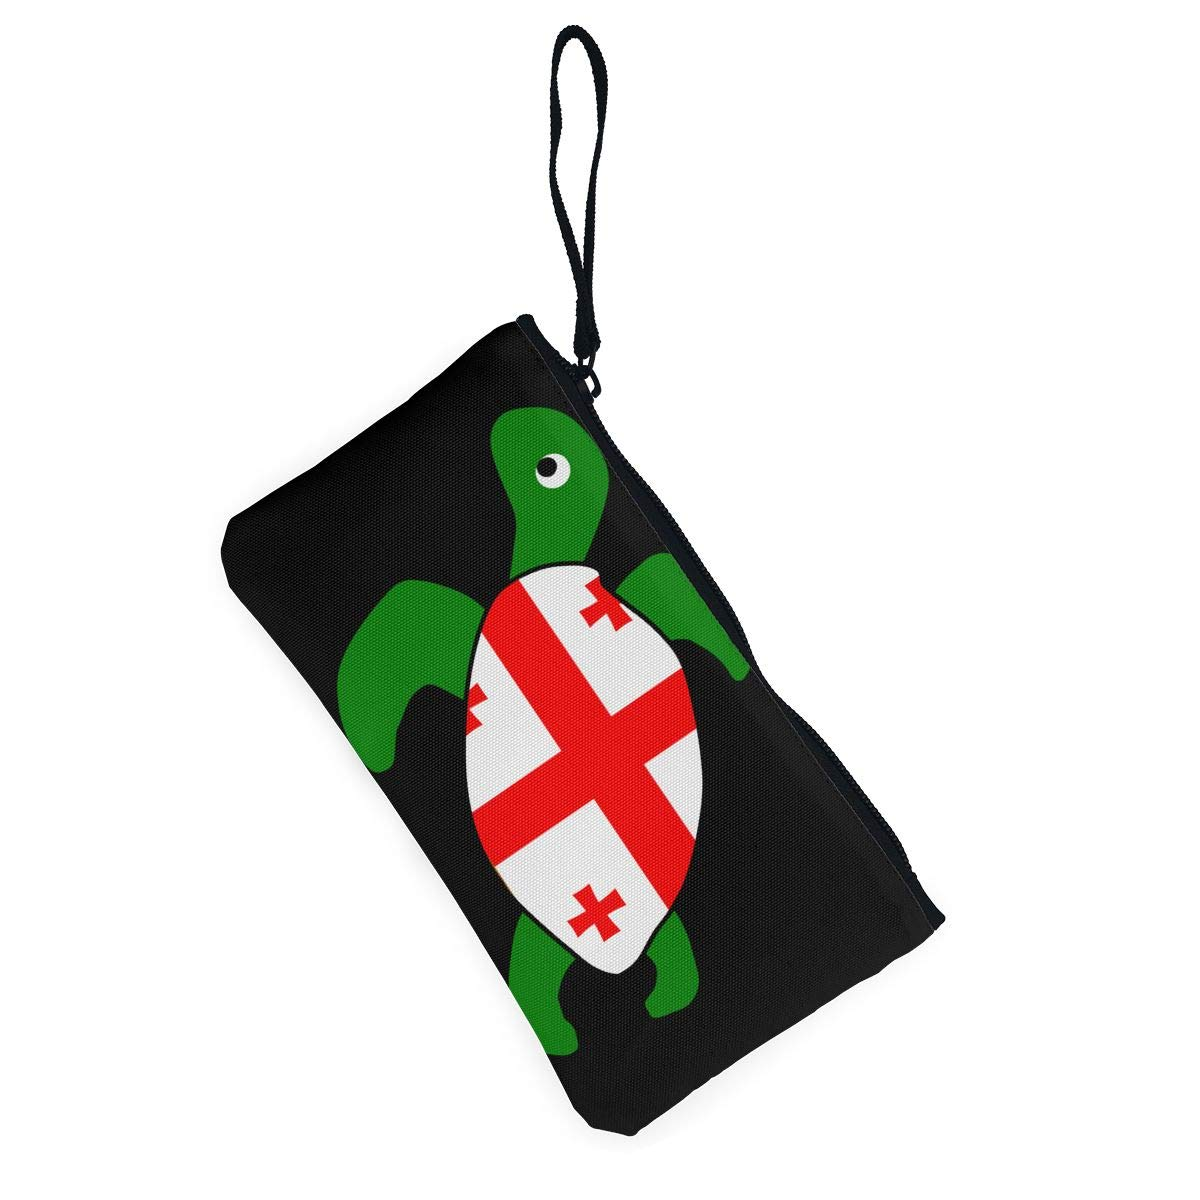 Sea Turtle Georgia Flag Canvas Coin Purse Cute Change Pouch Wallet Bag Multifunctional Cellphone Bag with Handle